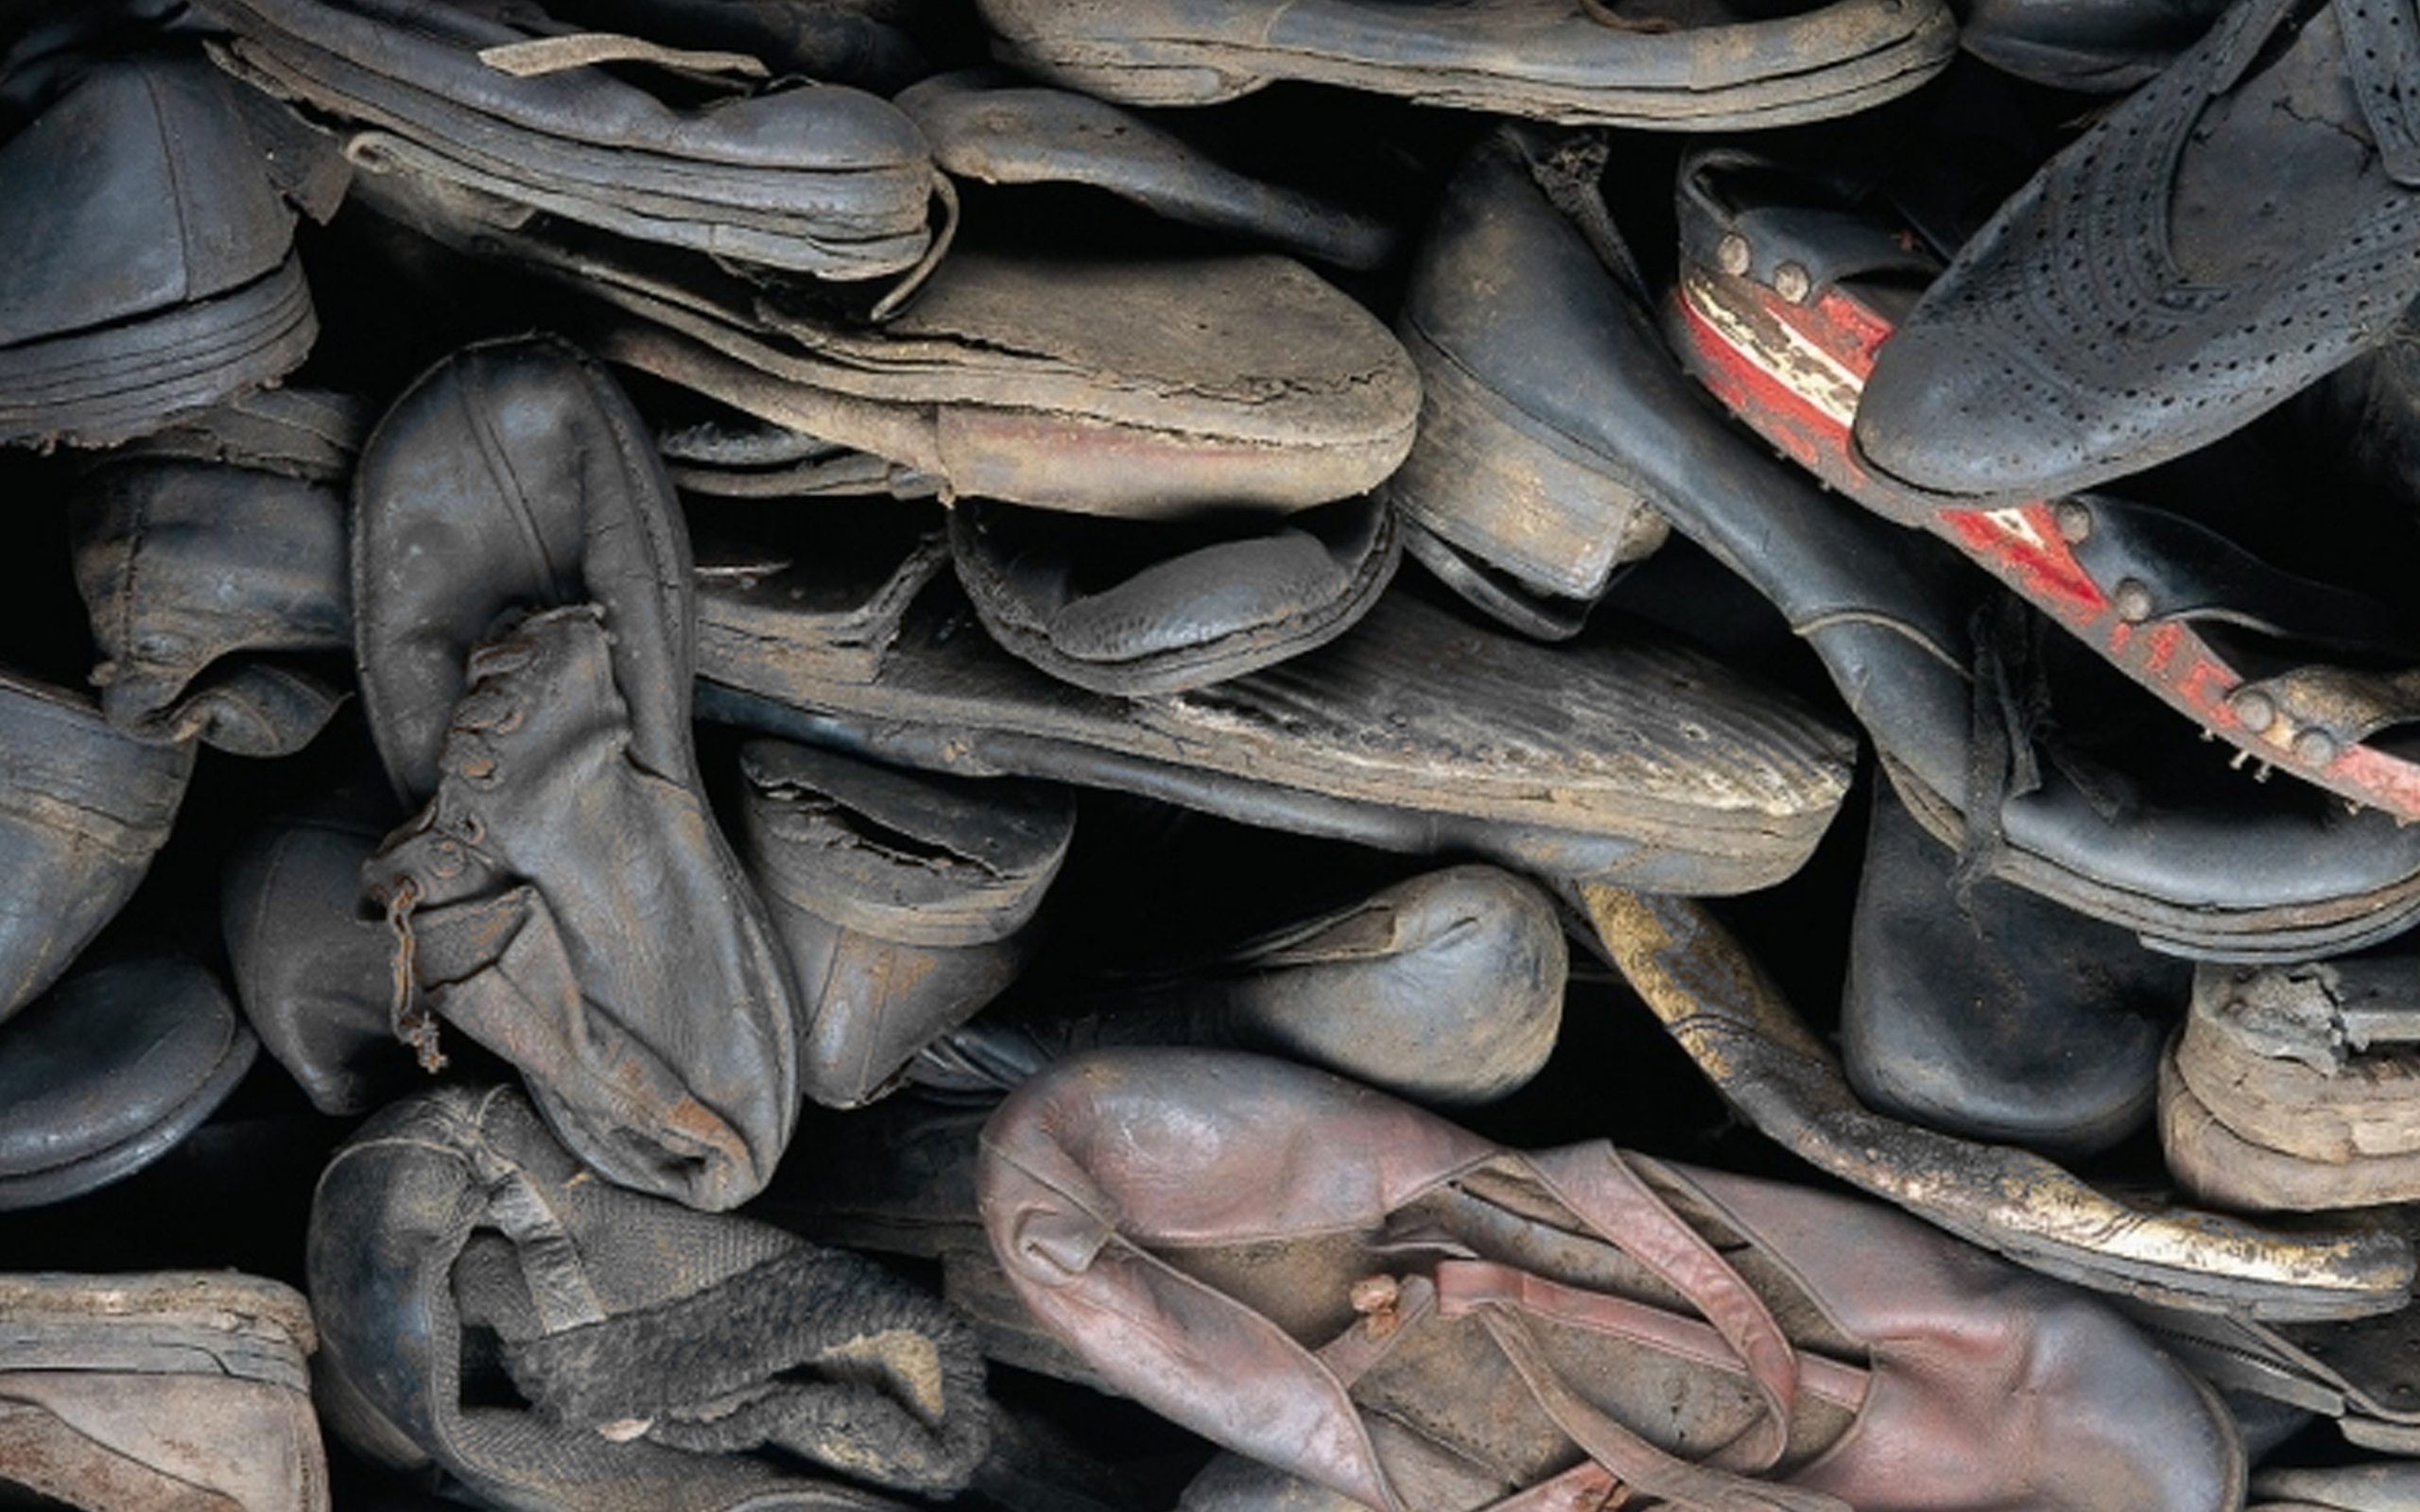 Shoes on display in the Holocaust Exhibition